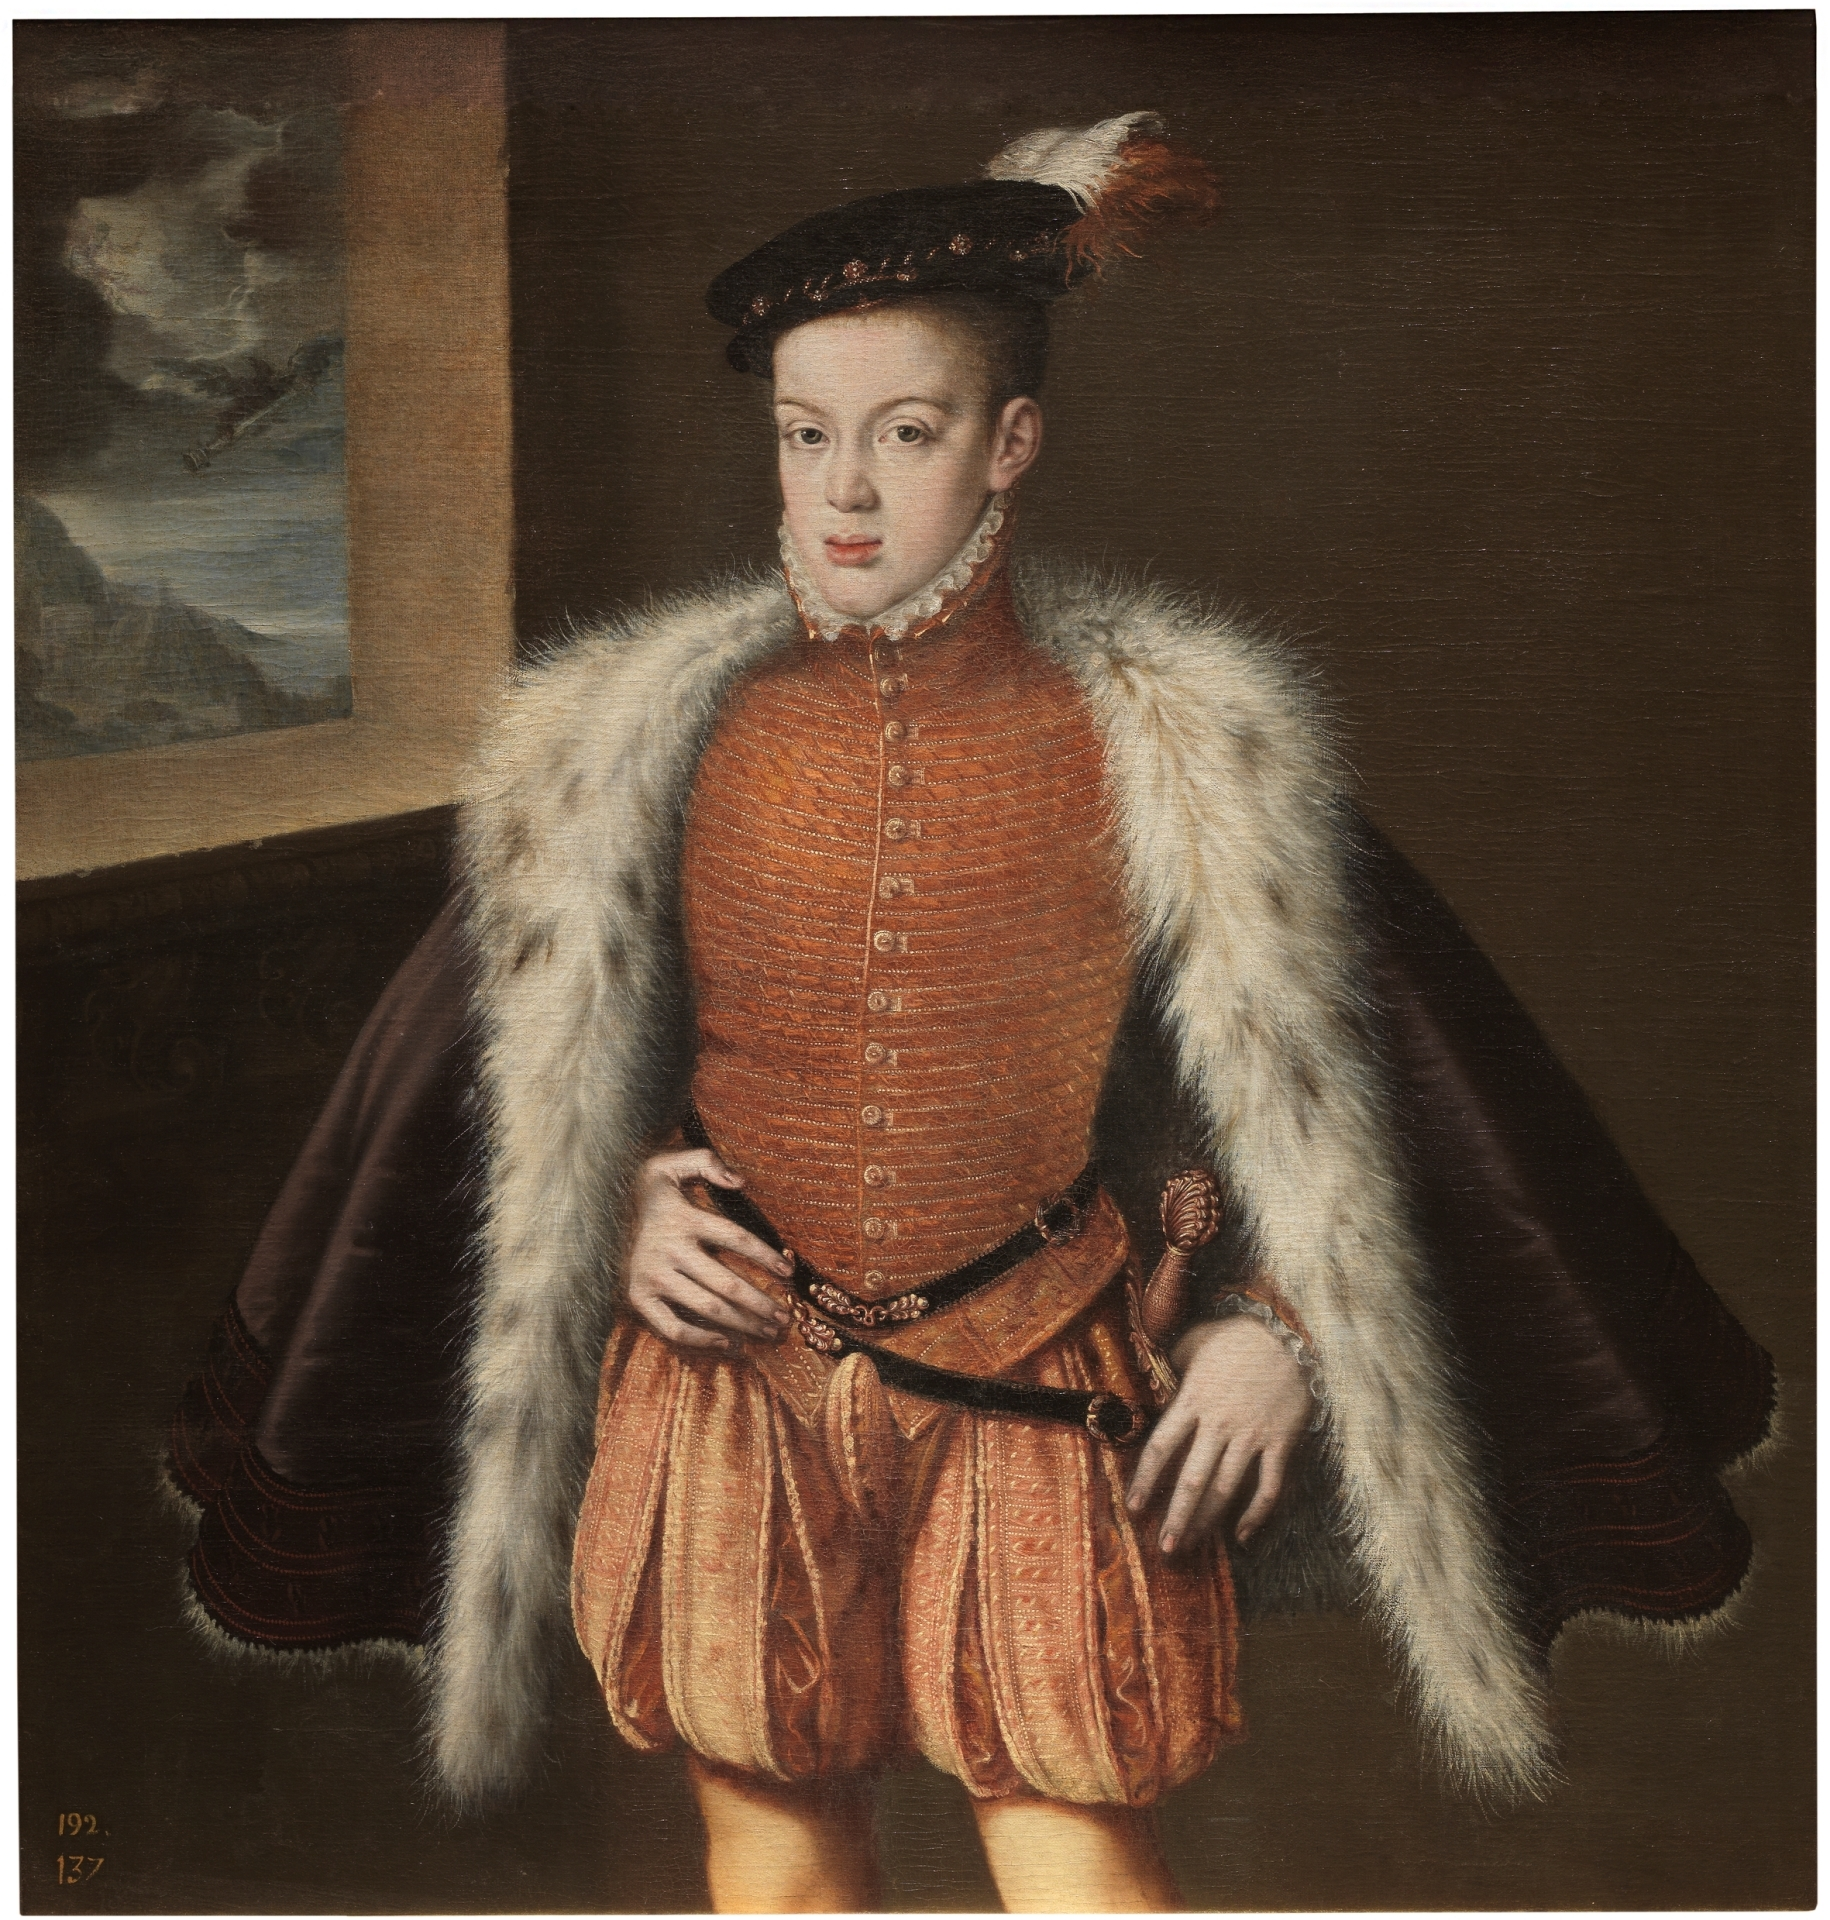 'Prince Don Carlos,' Alonso Sánchez Coello, 1555- 1559. Courtesy of Museo Nacional del Prado.